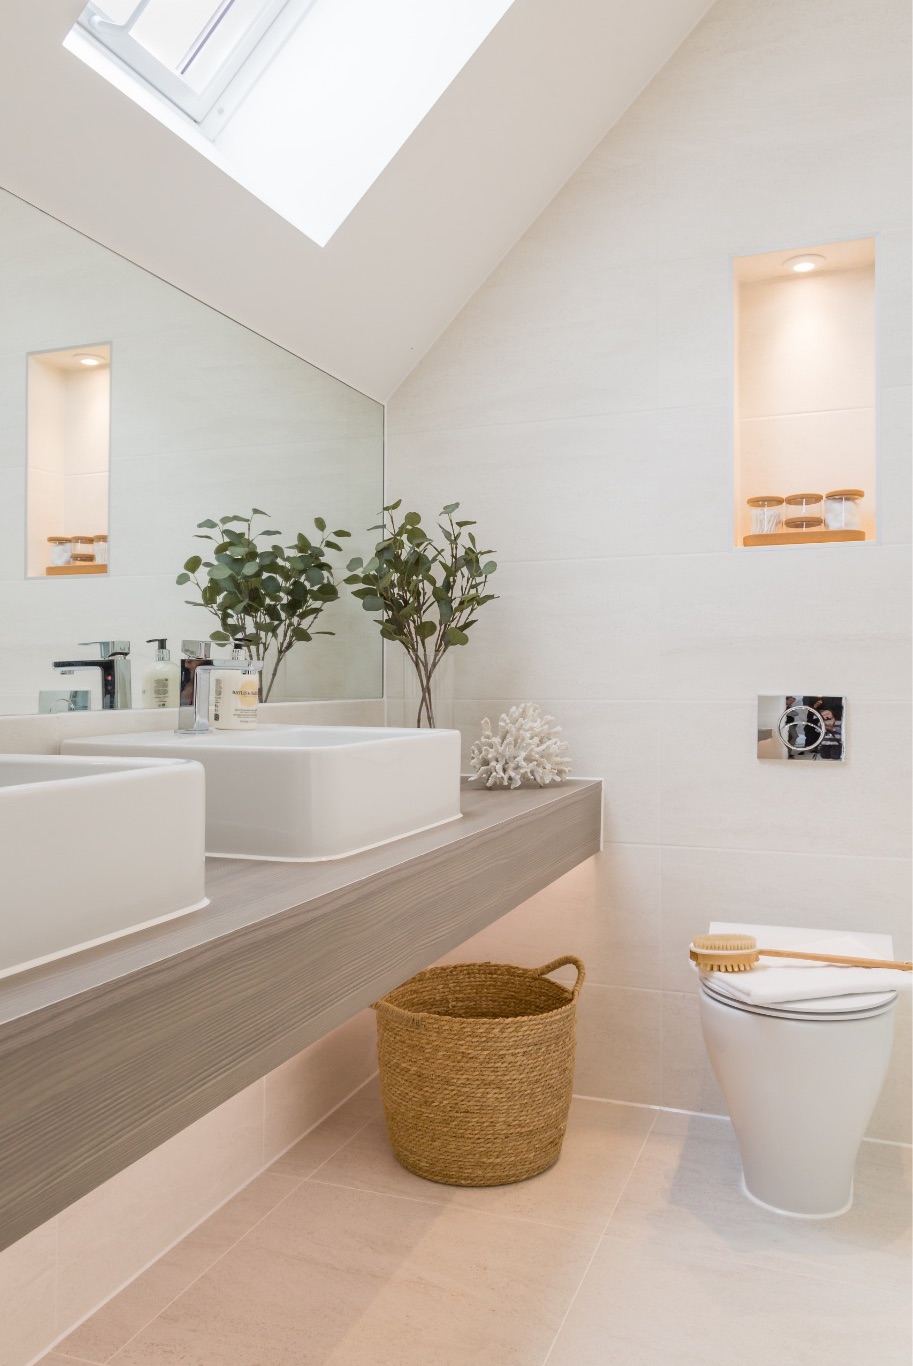 Show Homes images